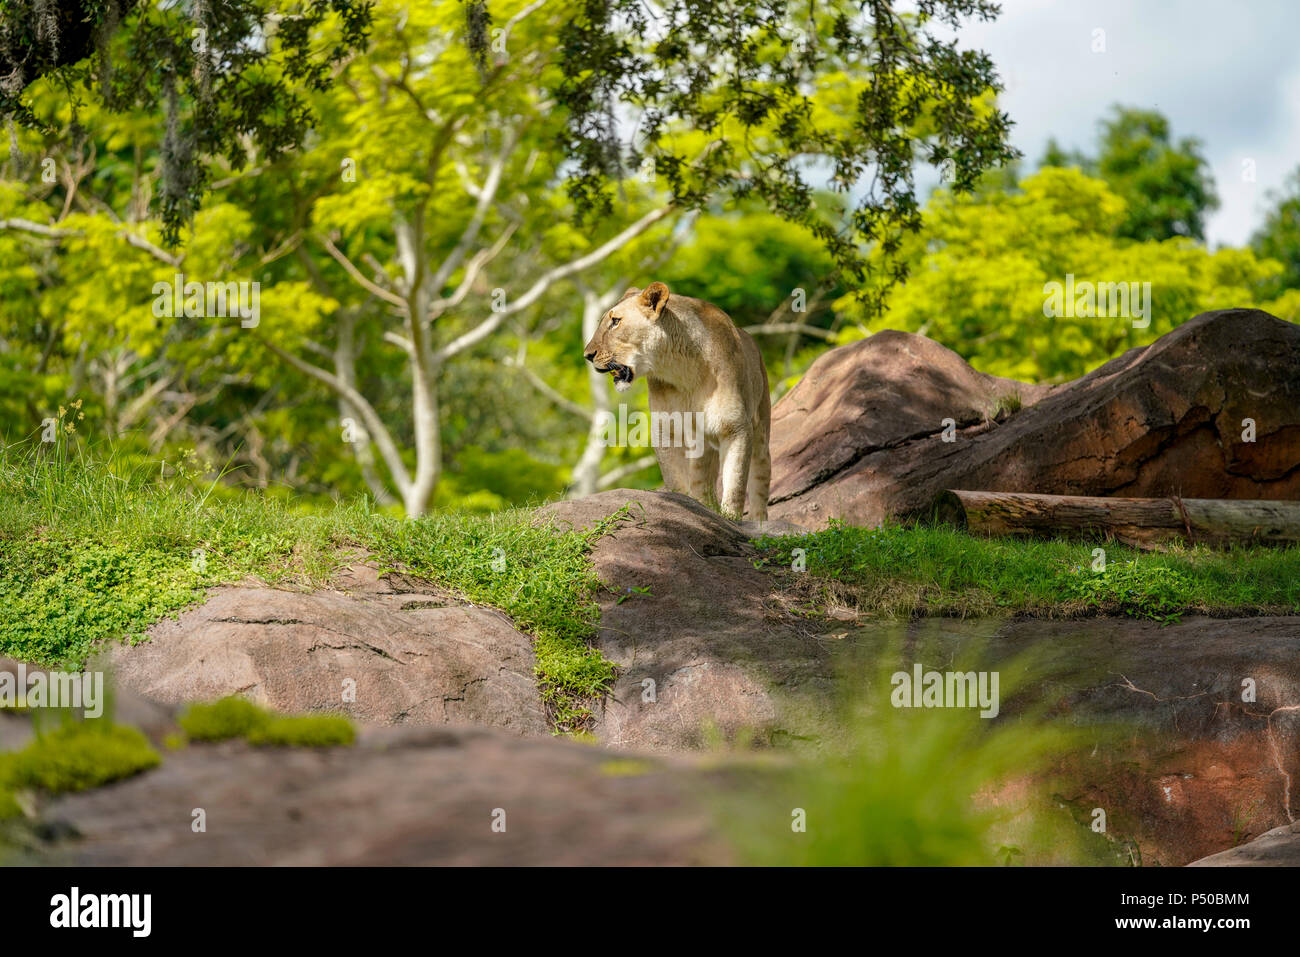 Kilimanjaro Safaris is a safari attraction at Disney's Animal Kingdom on the Walt Disney World Resort property in Lake Buena Vista, Florida. - Stock Image